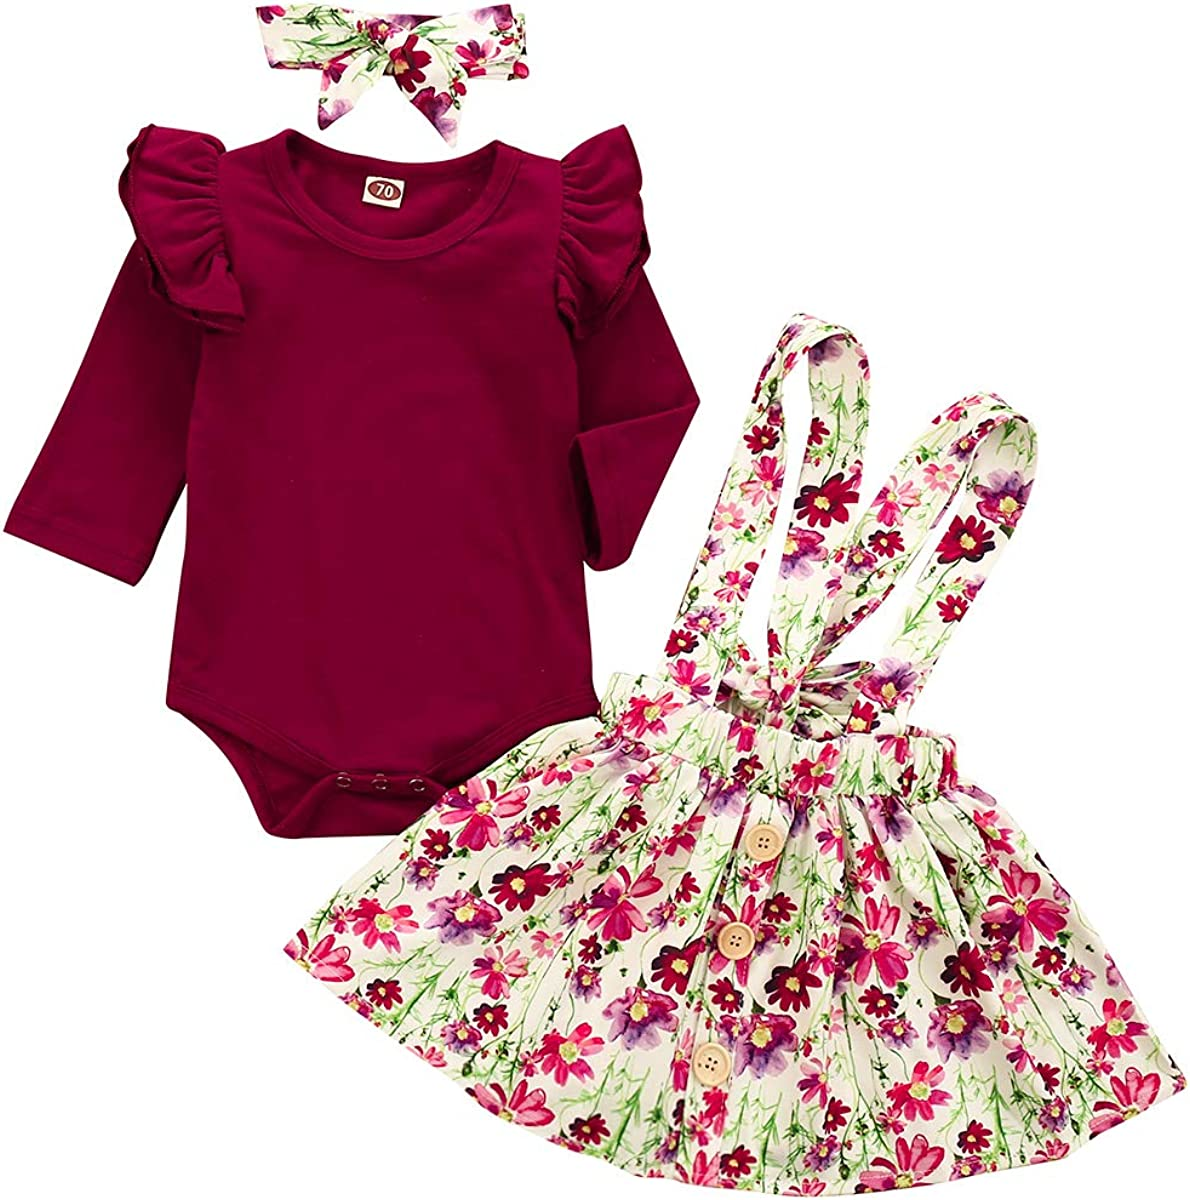 Floral Overall Skirt Infant Baby Girl Suspender Outfits 3Pcs Ruffles Short Sleeve Romper Headband Clothes Set